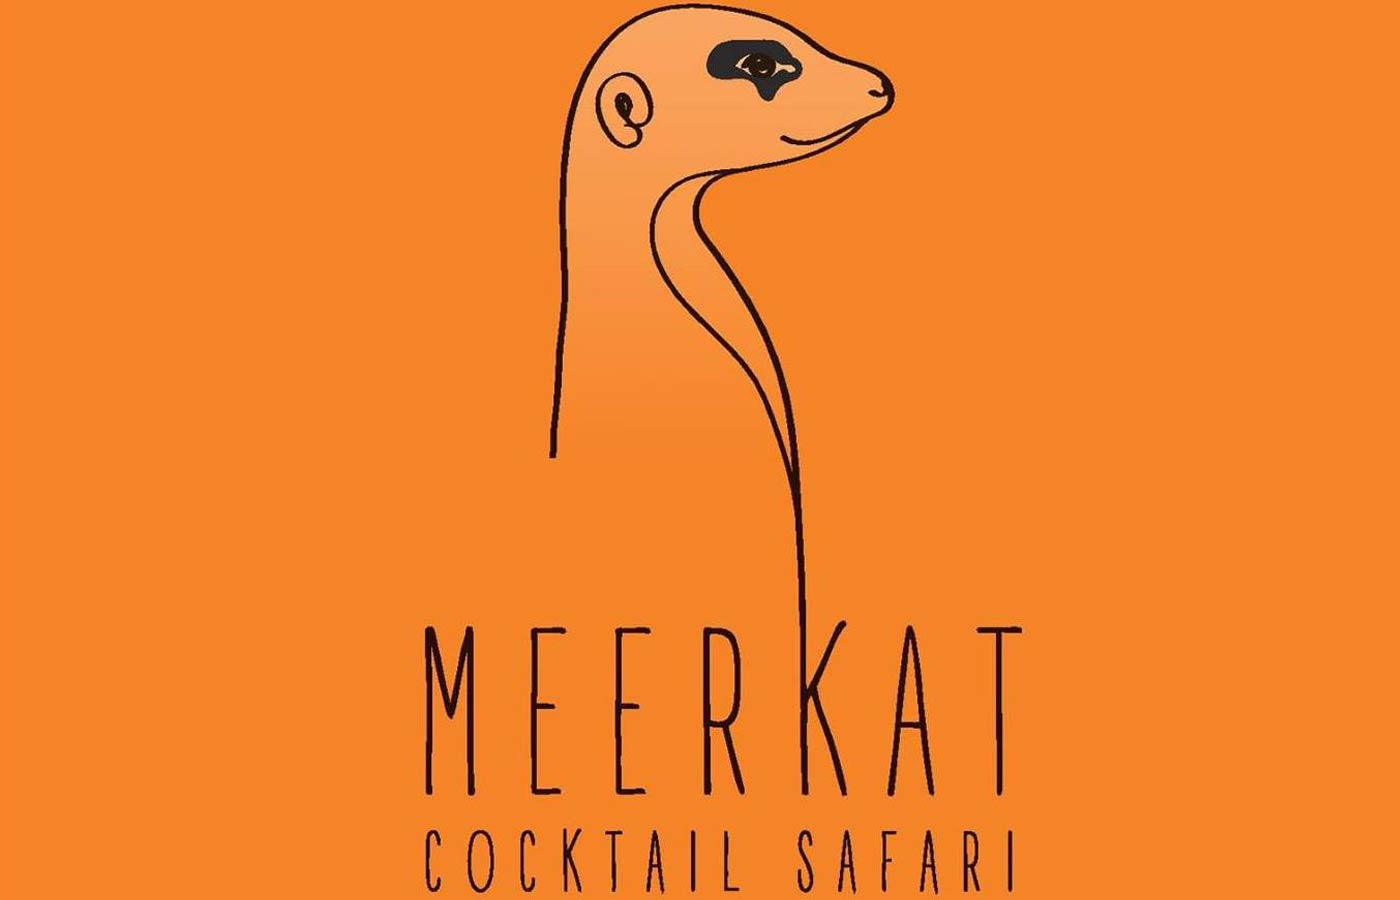 MEERKAT COCKTAIL SAFARI